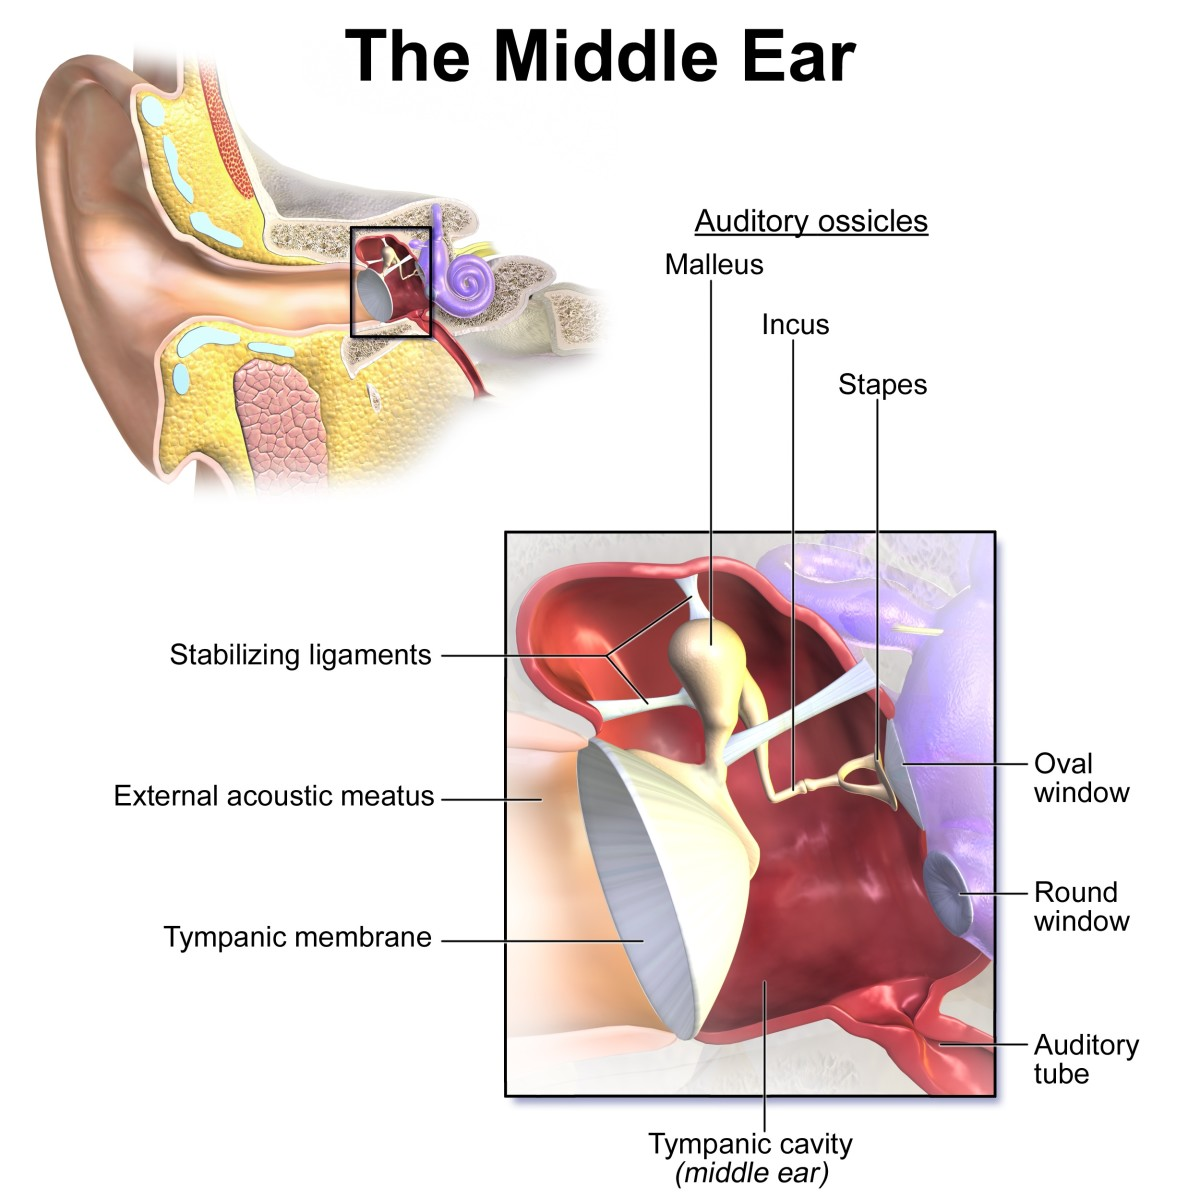 The malleus (hammer), incus (anvil) and stapes (stirrup) in the middle ear are collectively known as ossicles.